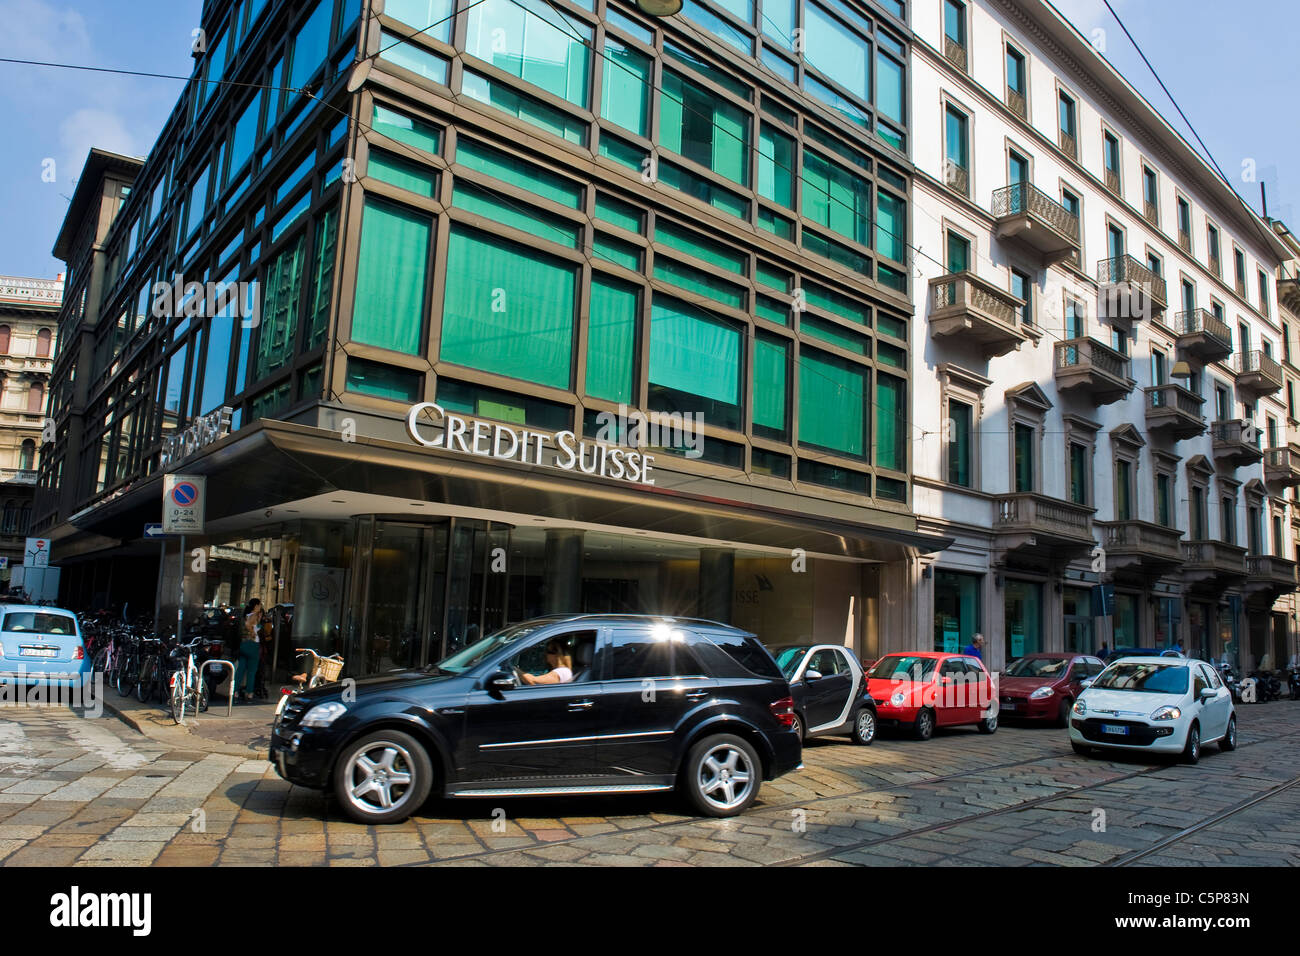 Credit Suisse, Milan, Lombardy, Italy - Stock Image